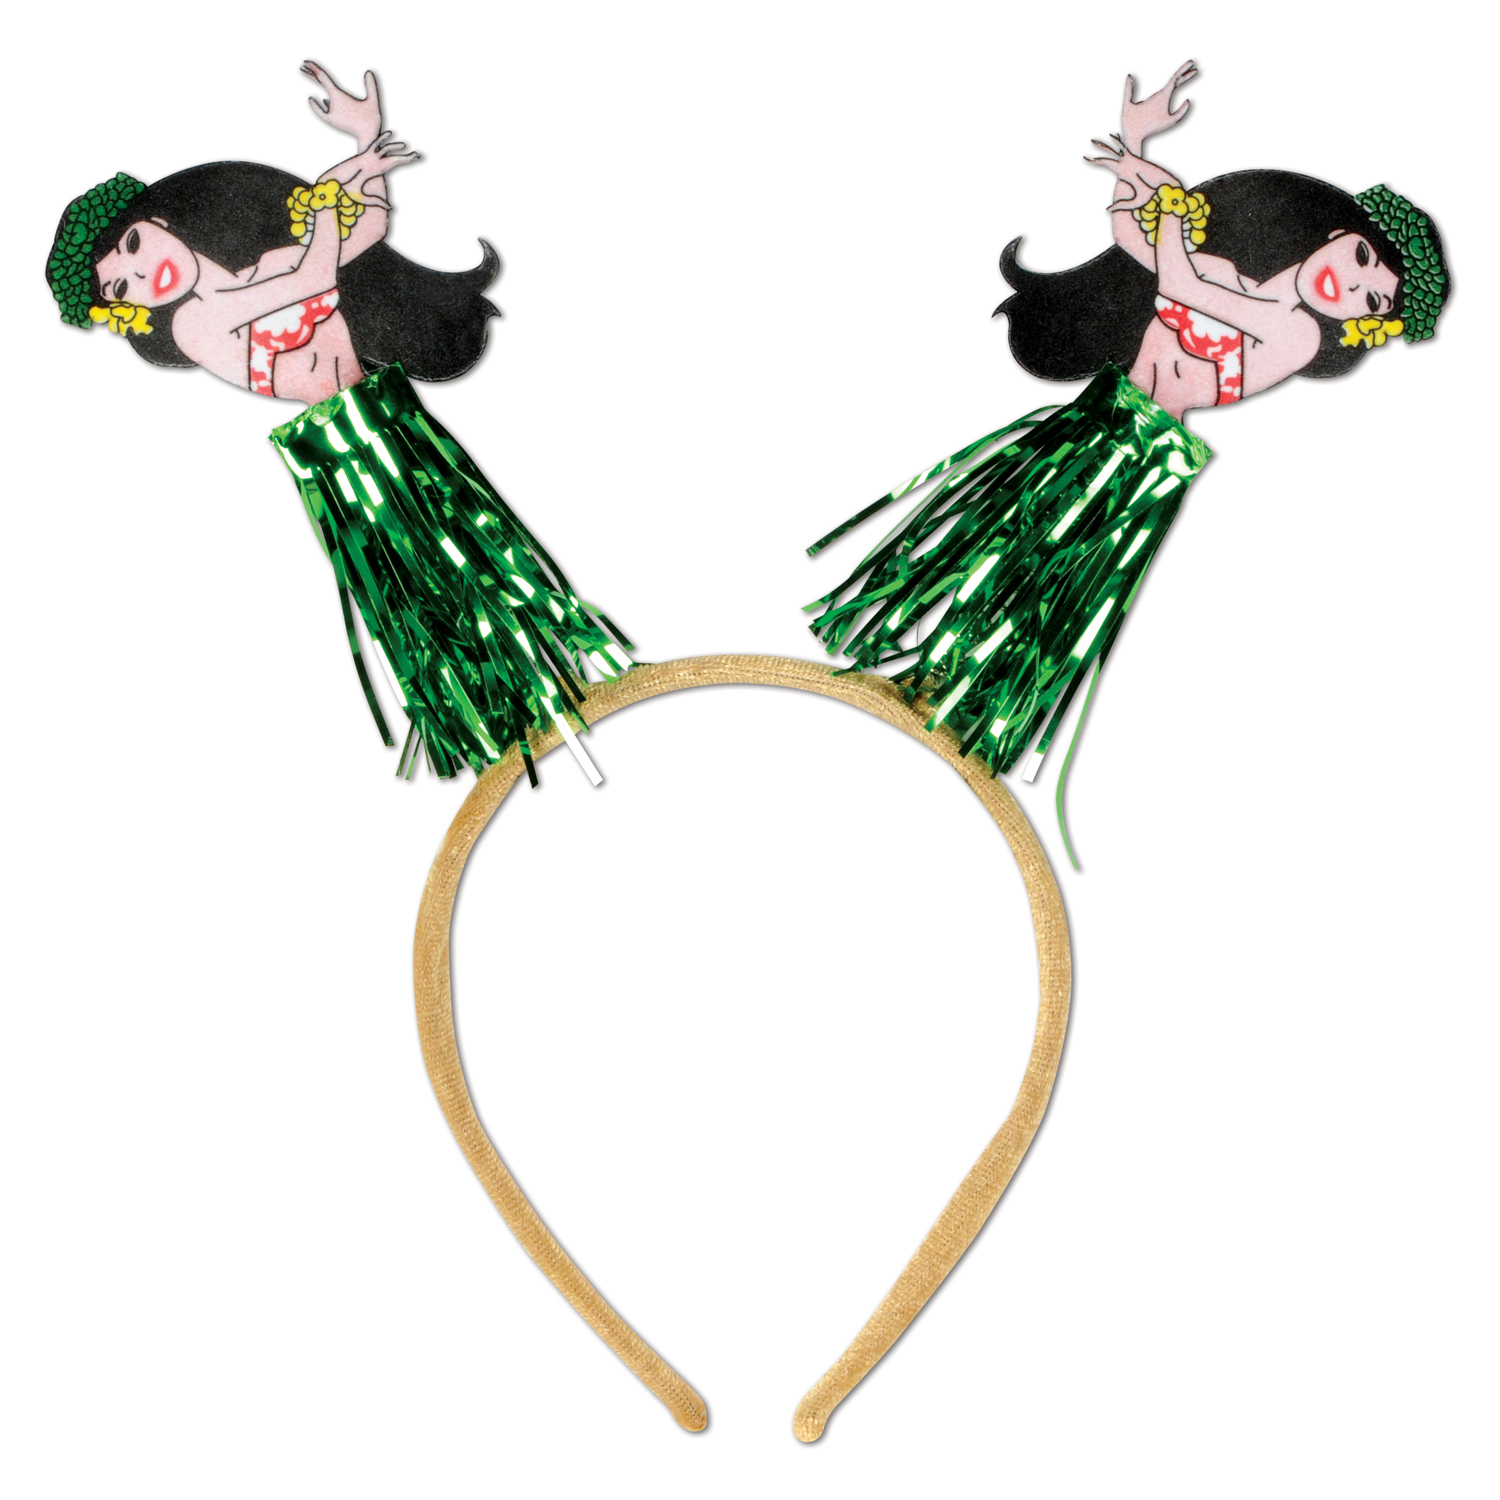 Hula Girl Boppers (Pack of 12) Hula Girl Boppers, party favor, luau, new years eve, wholesale, inexpensive, bulk